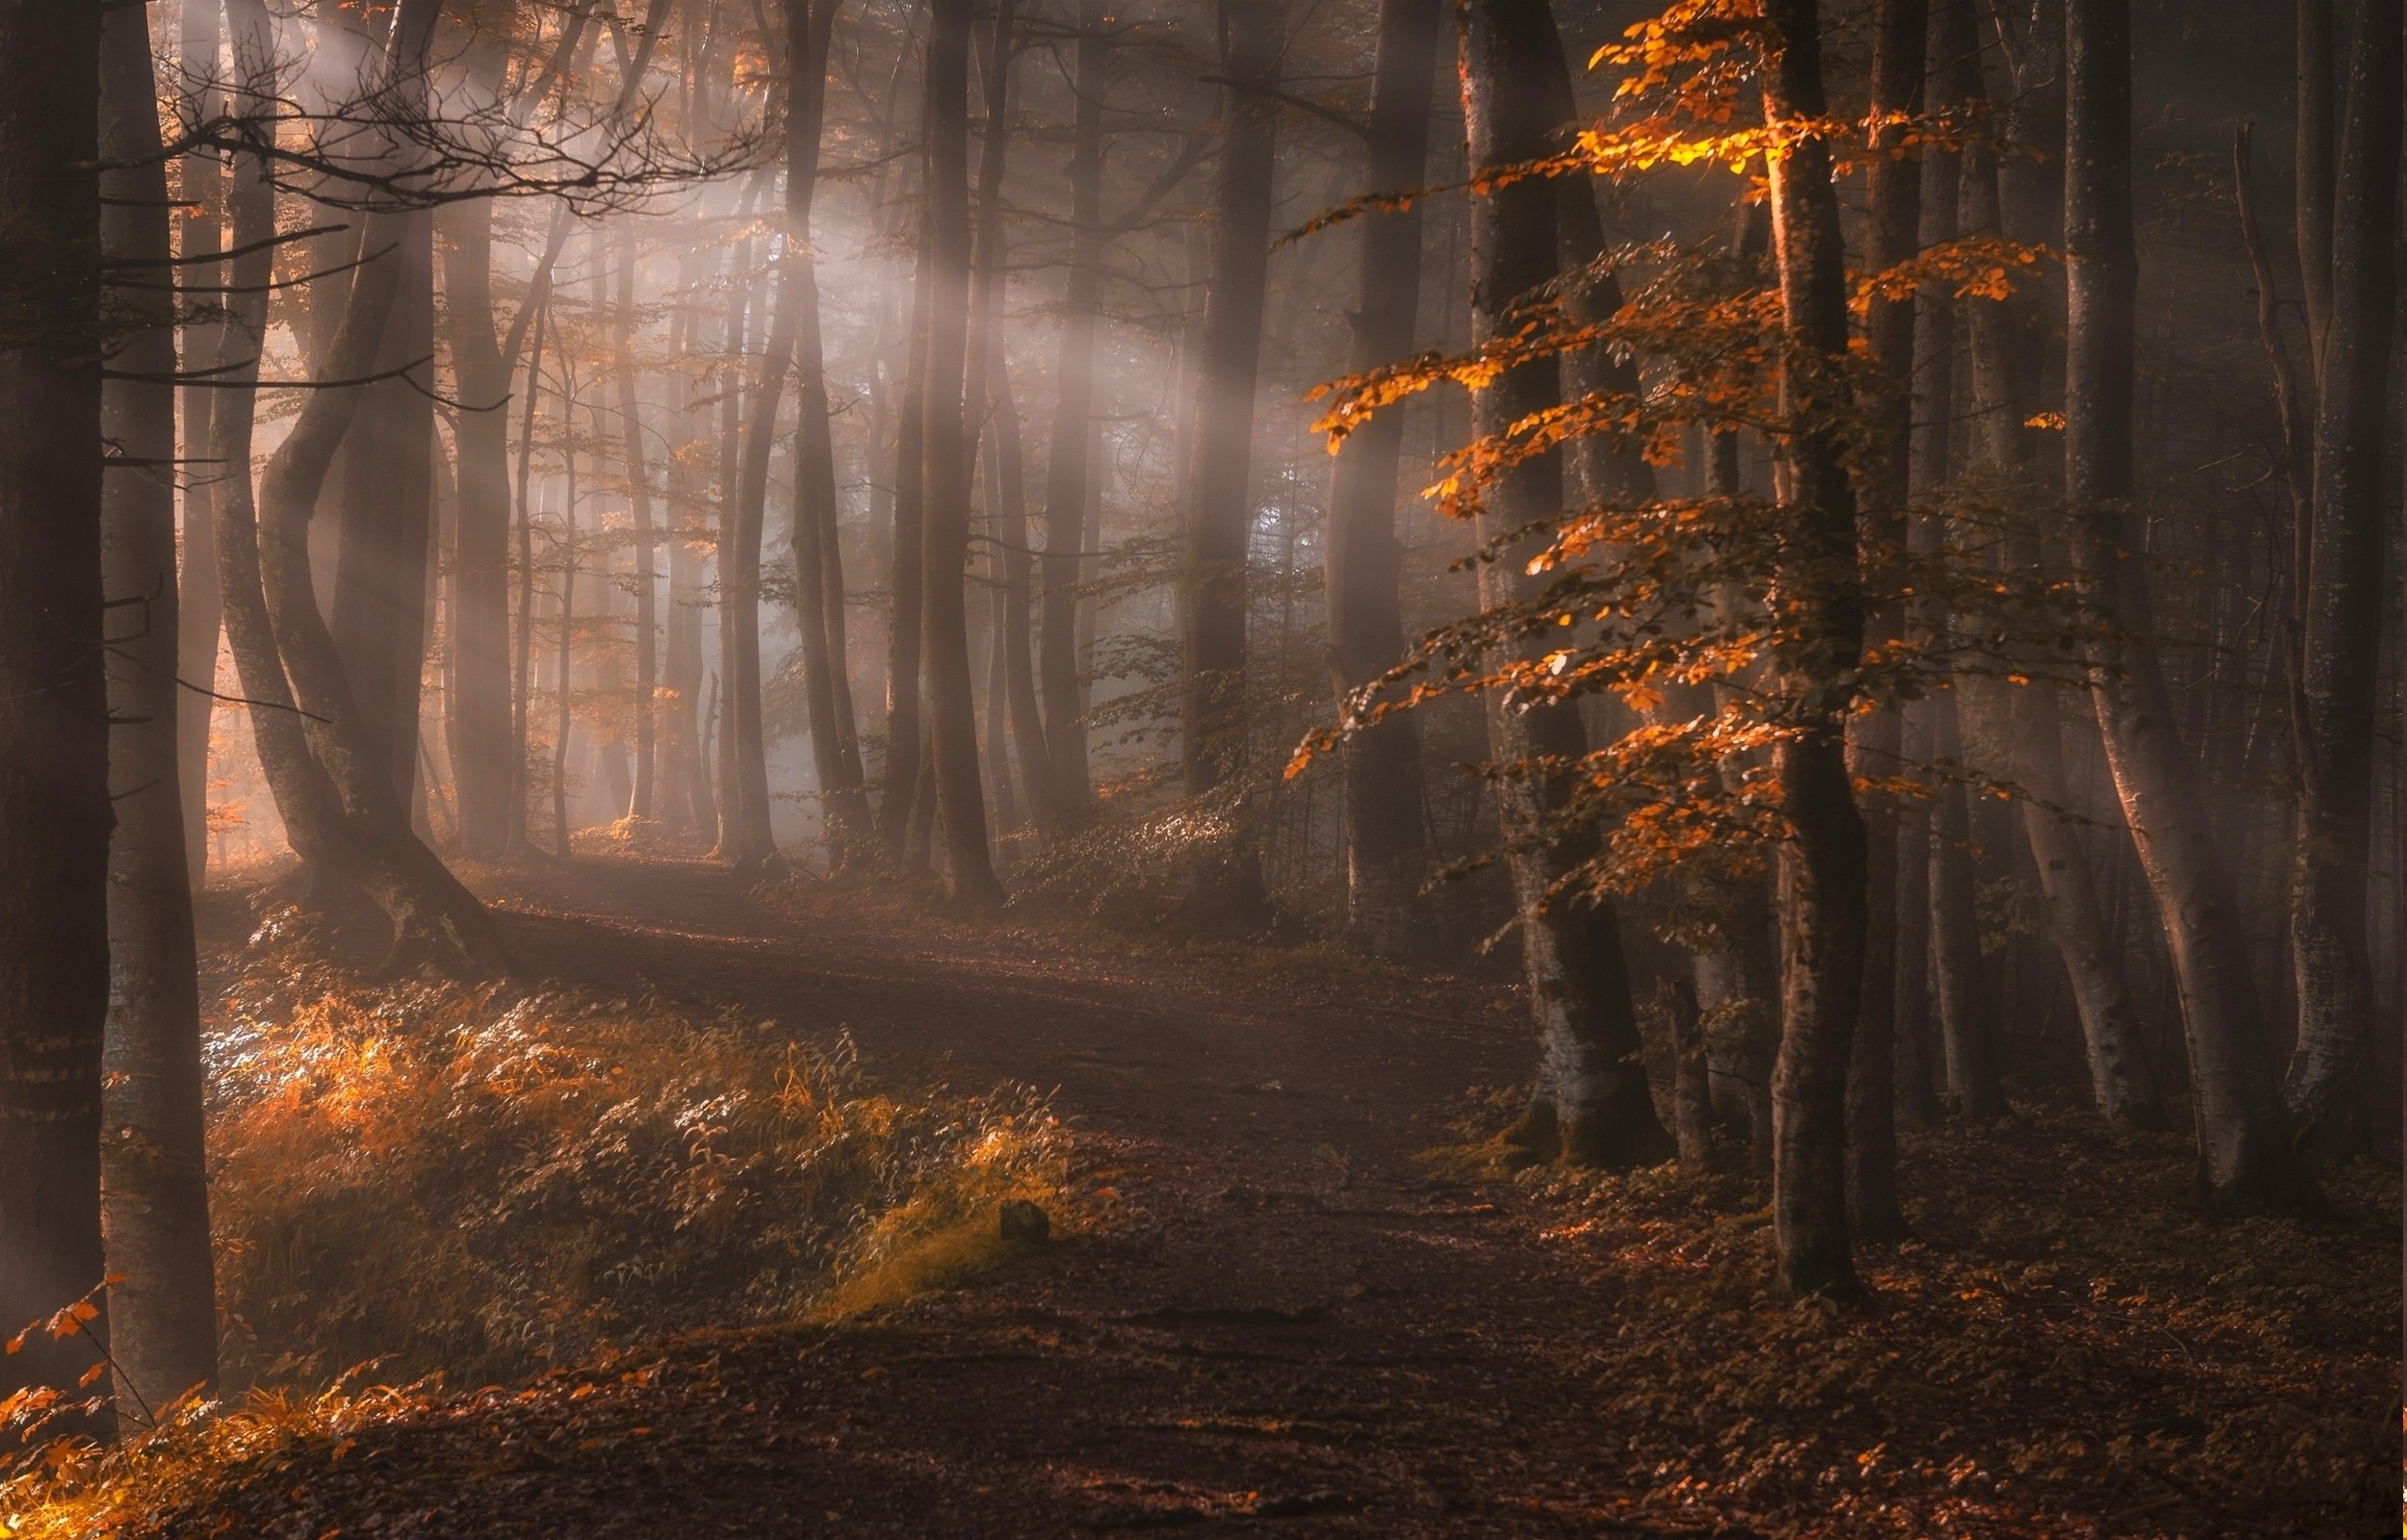 Full Hd Wallpapers Fall Nature Landscape Sun Rays Forest Path Leaves Trees